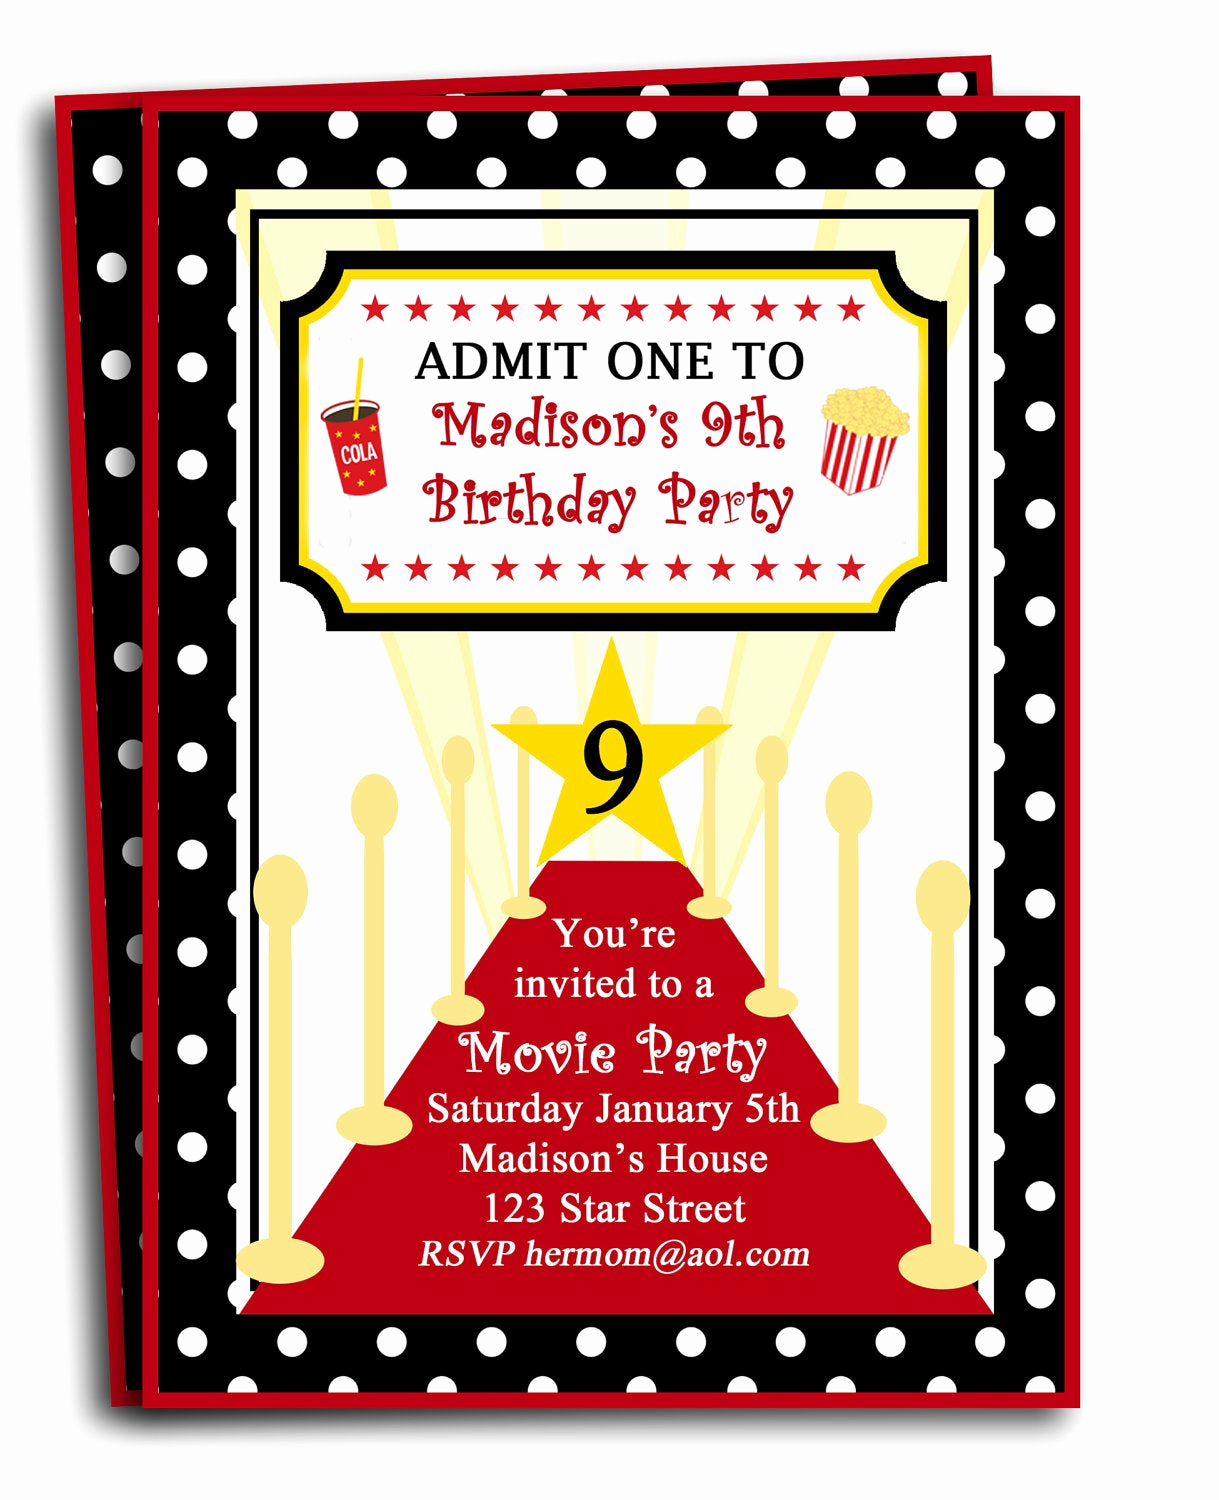 Red Carpet Invitation Template Luxury Red Carpet Party Invitation Printable or Printed with Free